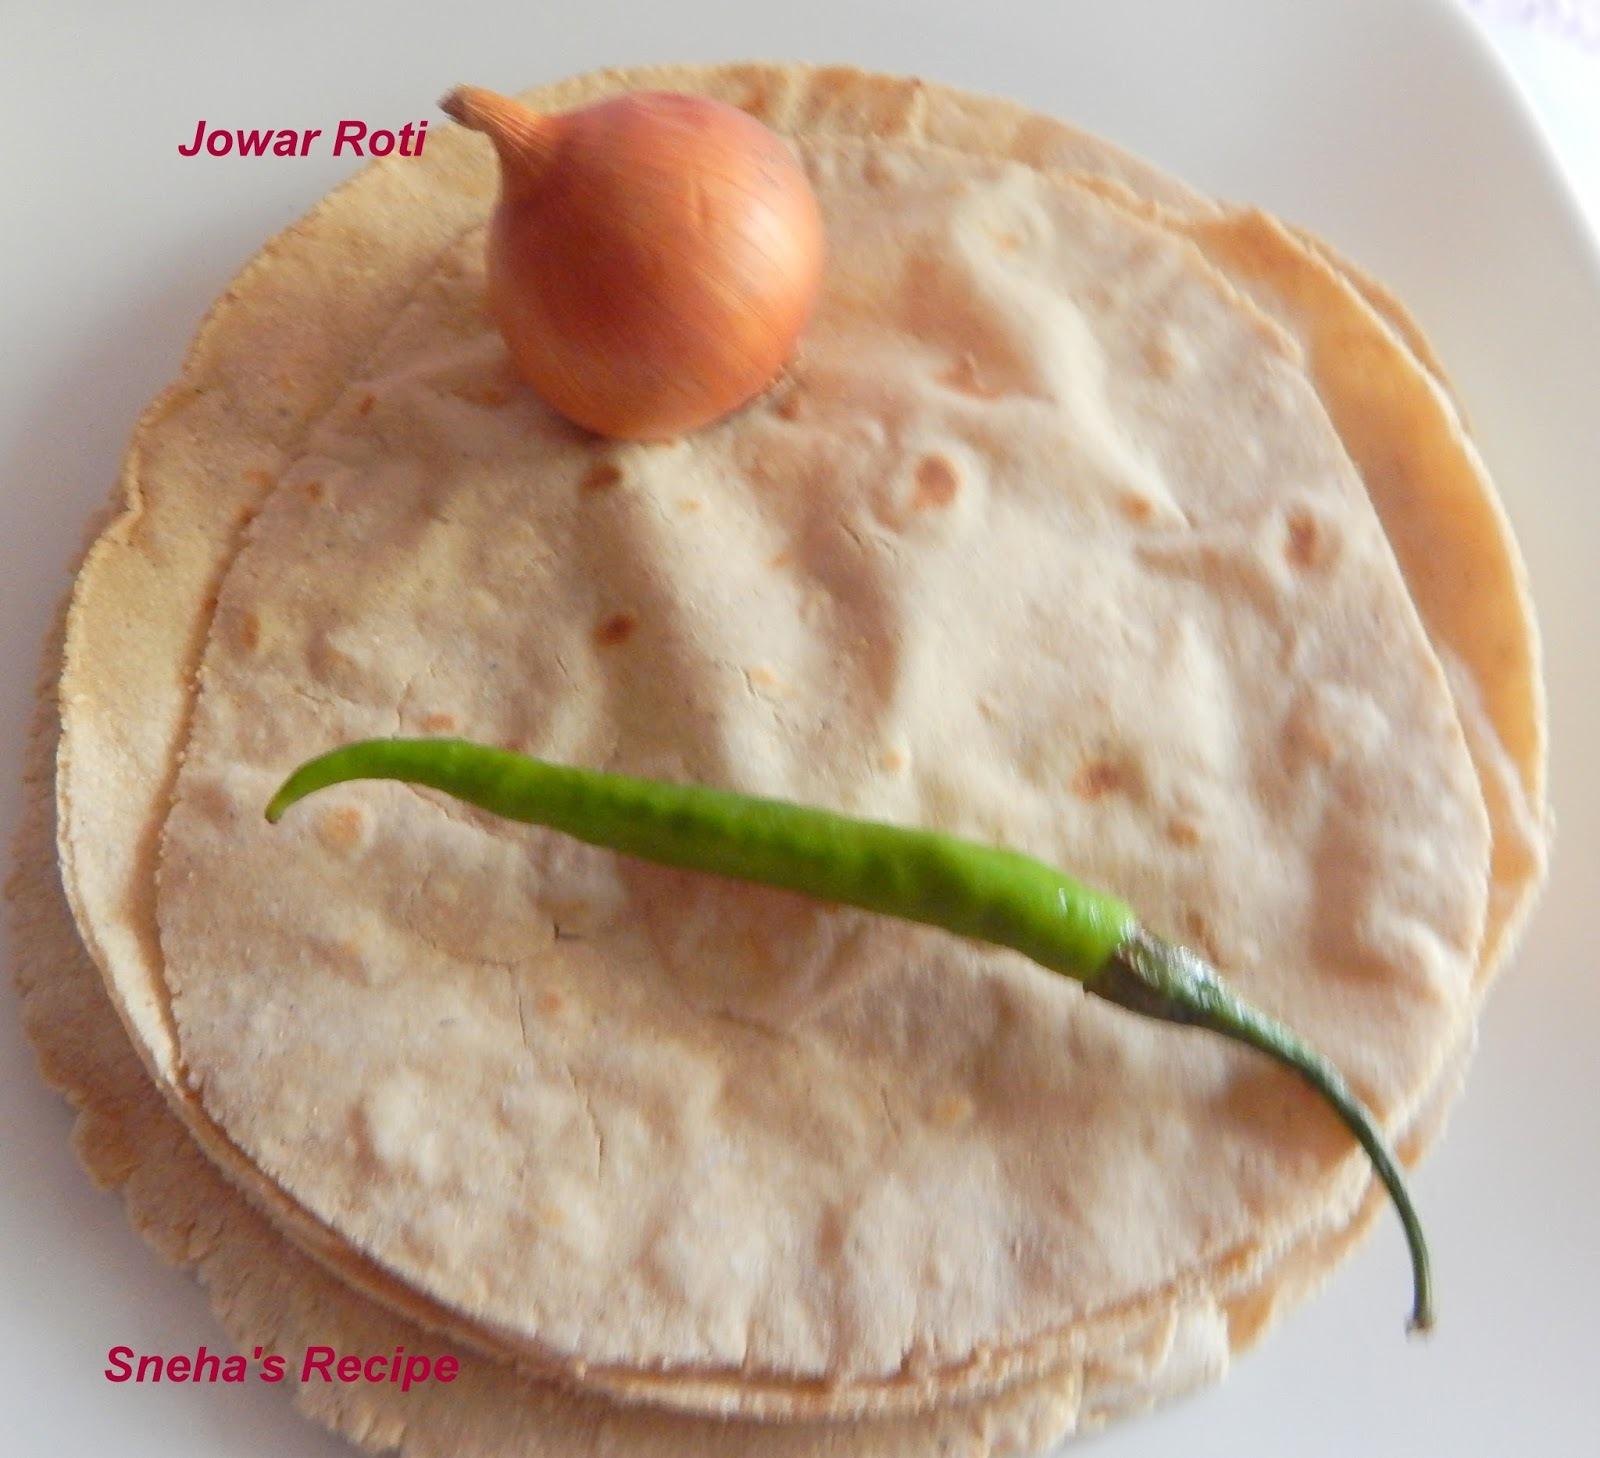 Jowar Roti / Indian Bread